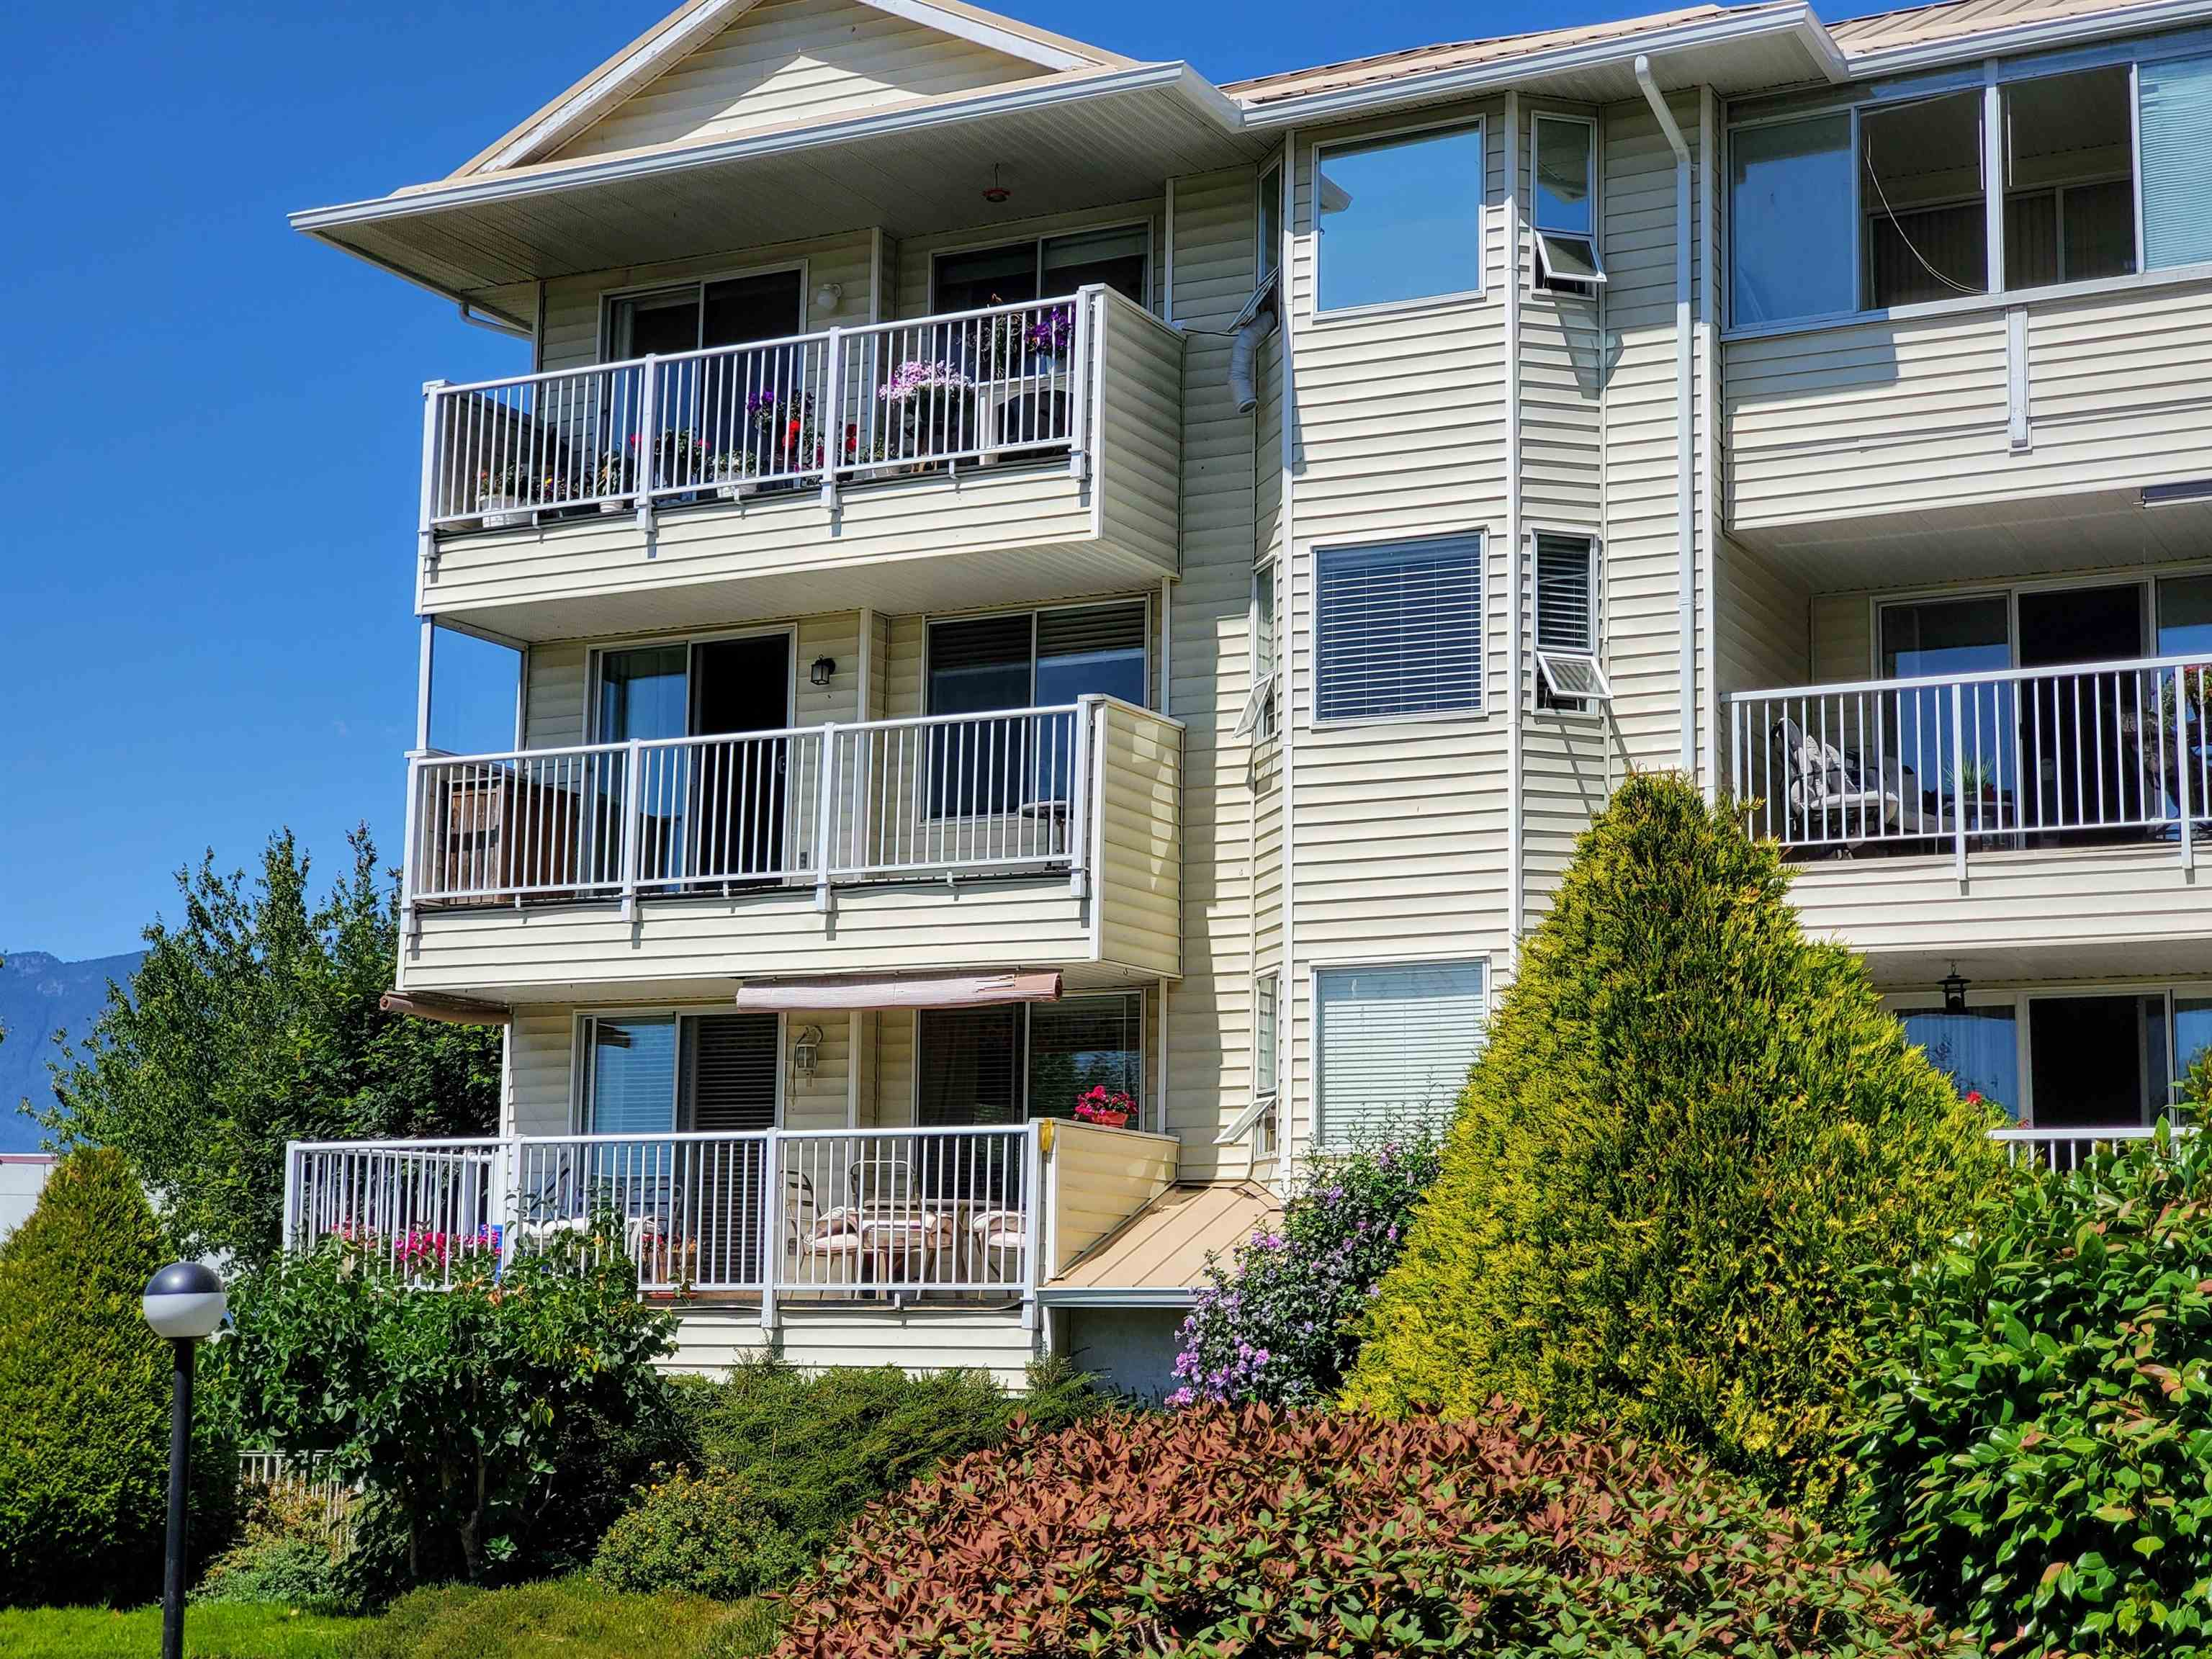 207 8725 ELM DRIVE - Chilliwack E Young-Yale Apartment/Condo for sale, 2 Bedrooms (R2604841) - #1